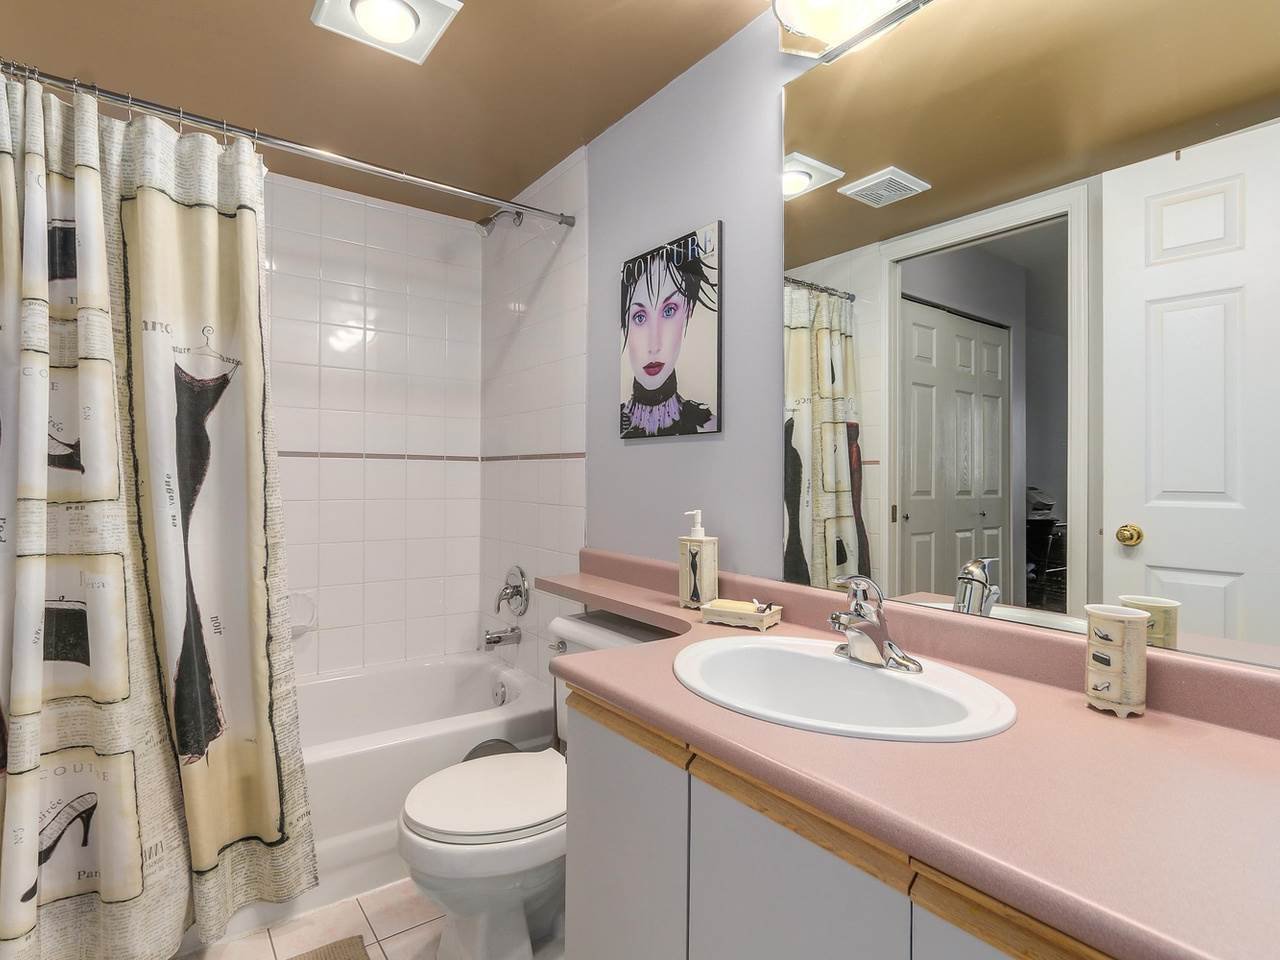 """Photo 15: Photos: 301 1623 E 2ND Avenue in Vancouver: Grandview VE Condo for sale in """"GRANDVIEW MANOR"""" (Vancouver East)  : MLS®# R2122830"""